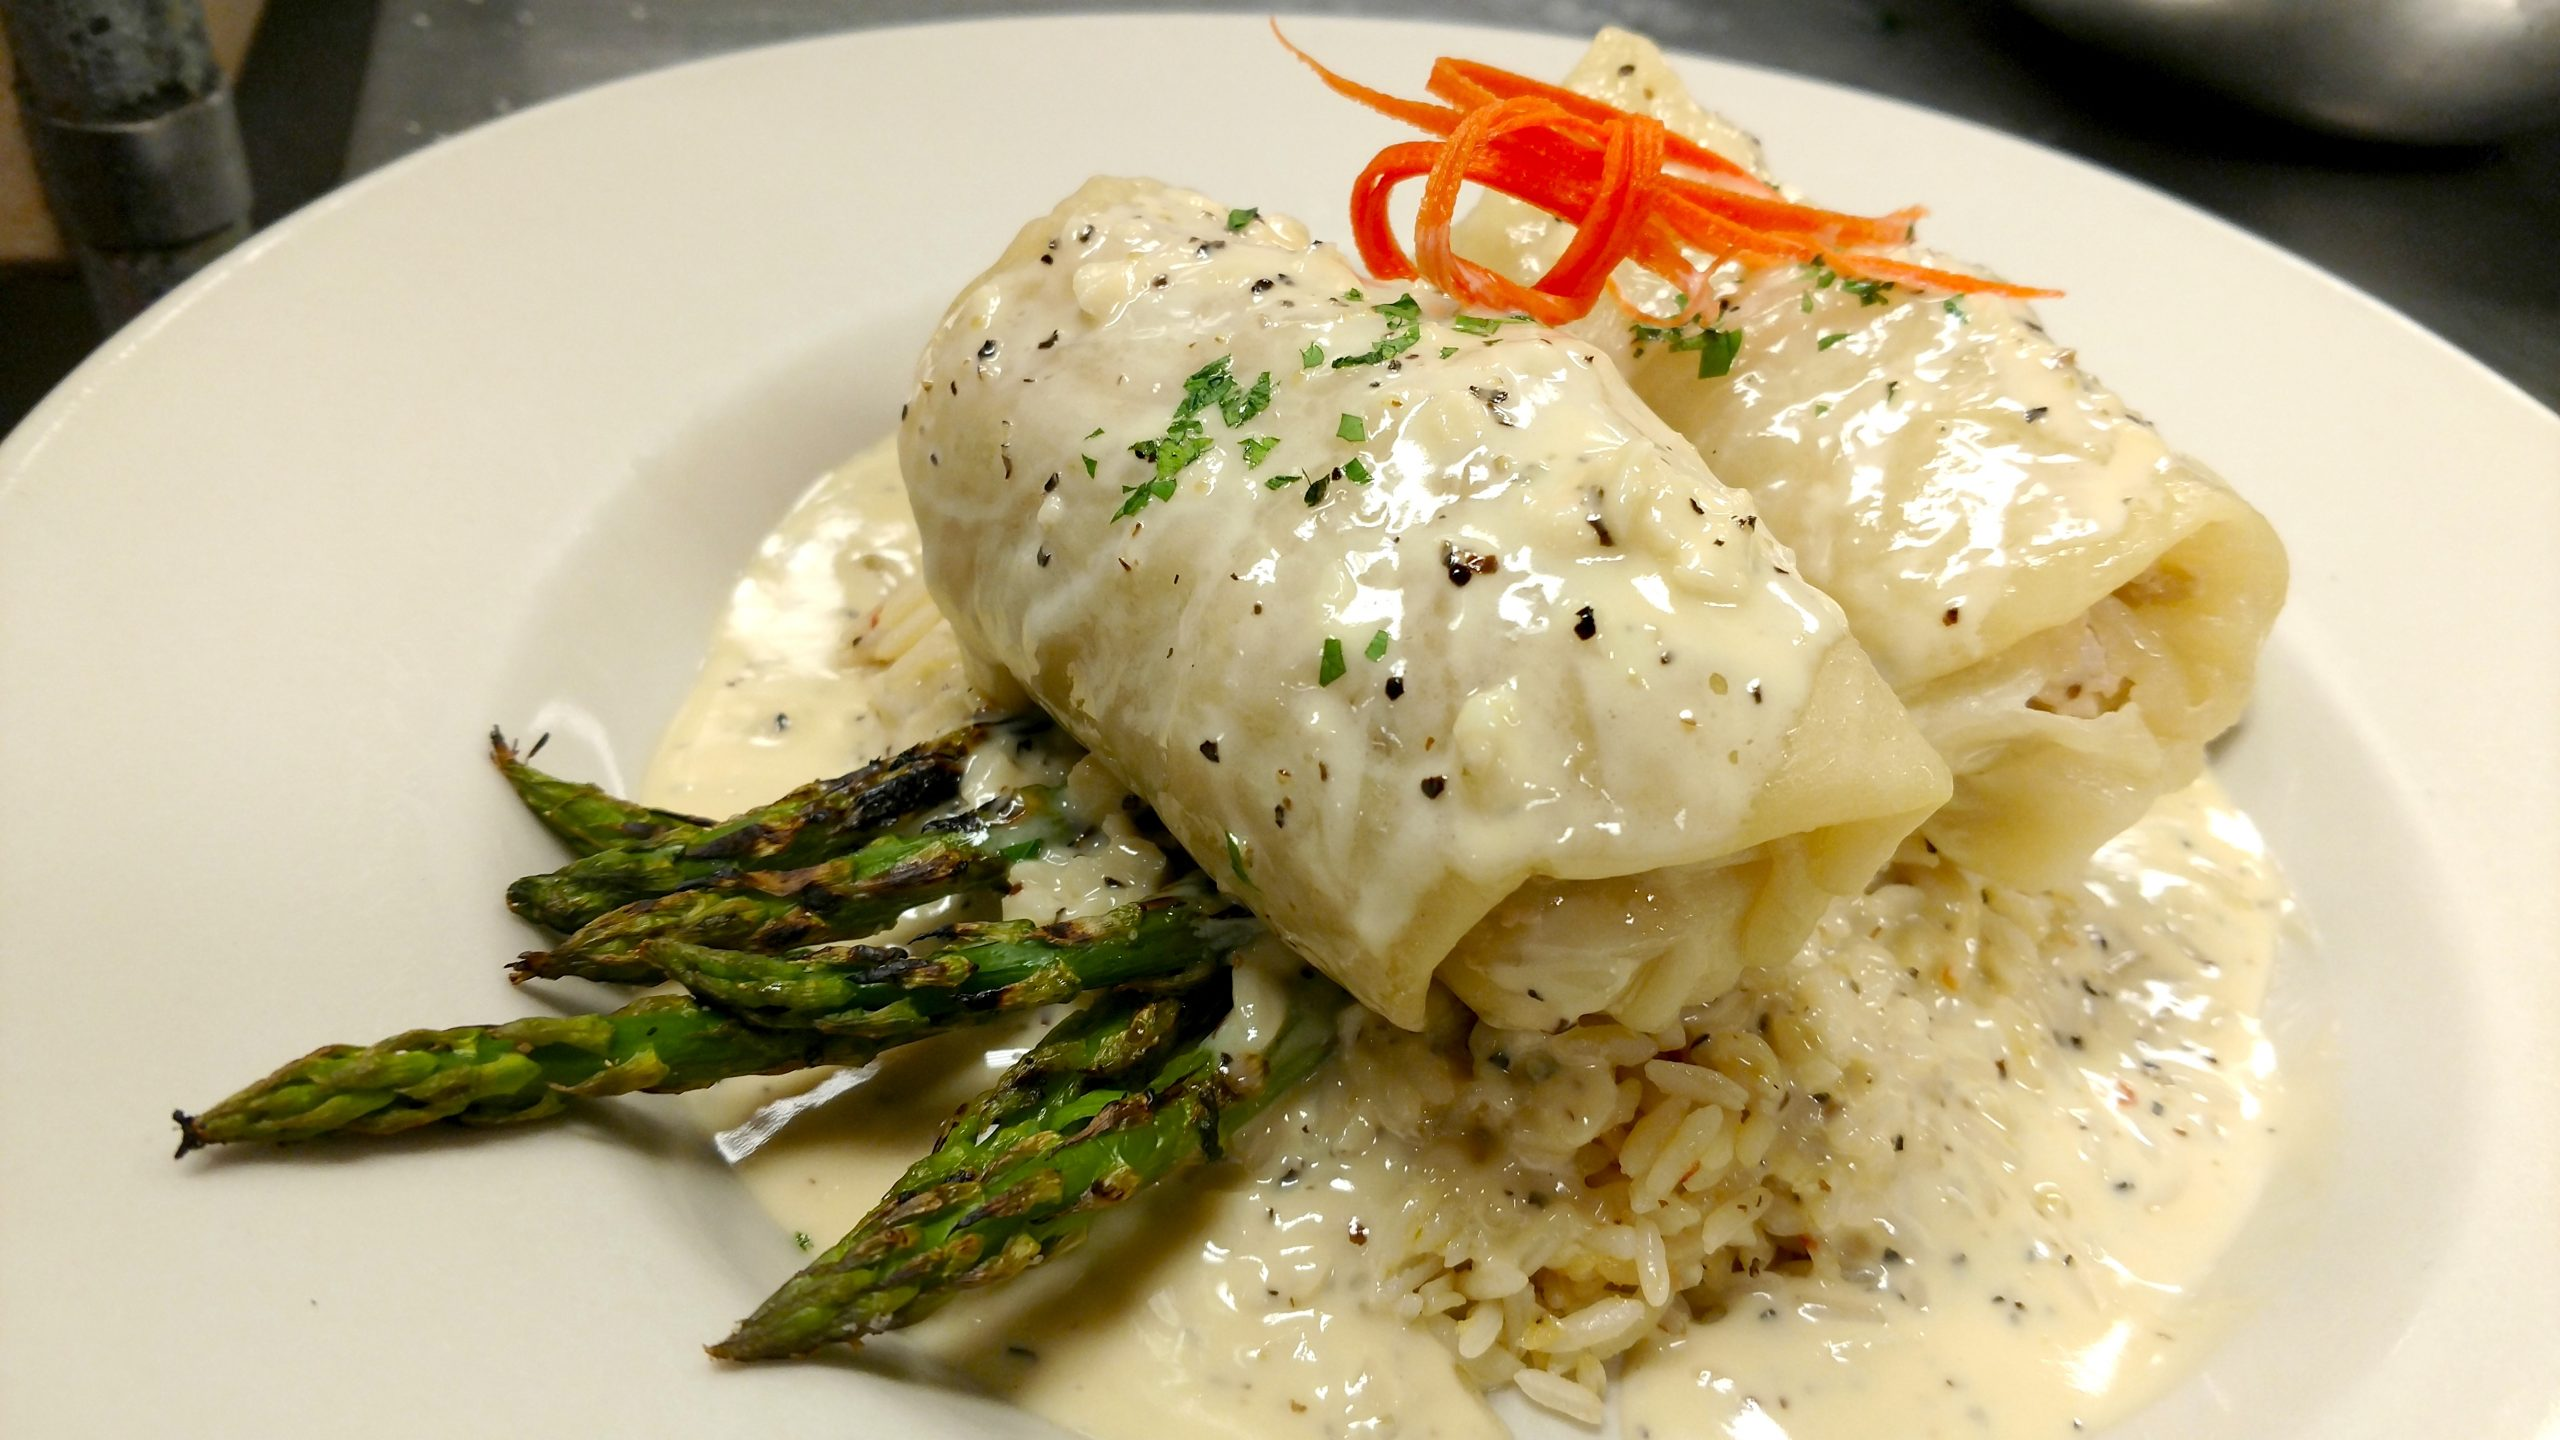 Jake and Telly's Specials - A close-up image of stuffed cabbage on top of asparagus and rice smothered with a white sauce and garnished with carrot and green parsley.